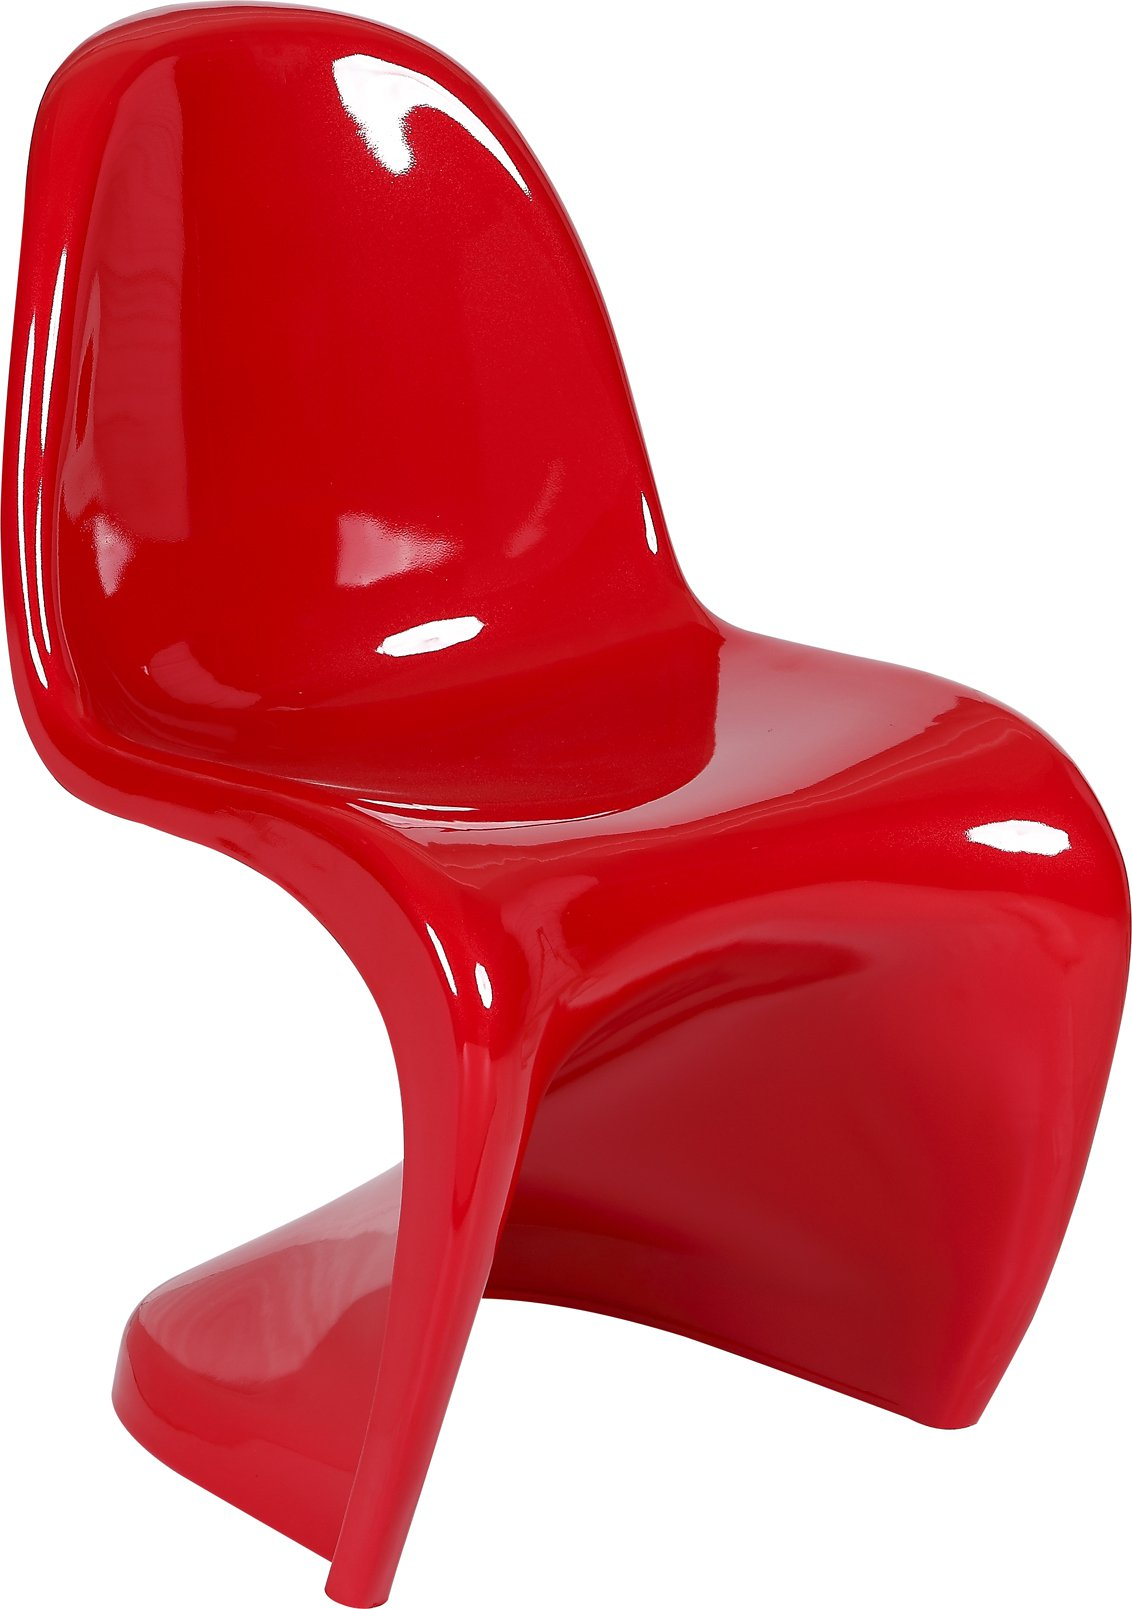 Chaise plastique design le monde de l a for Chaise plastique design